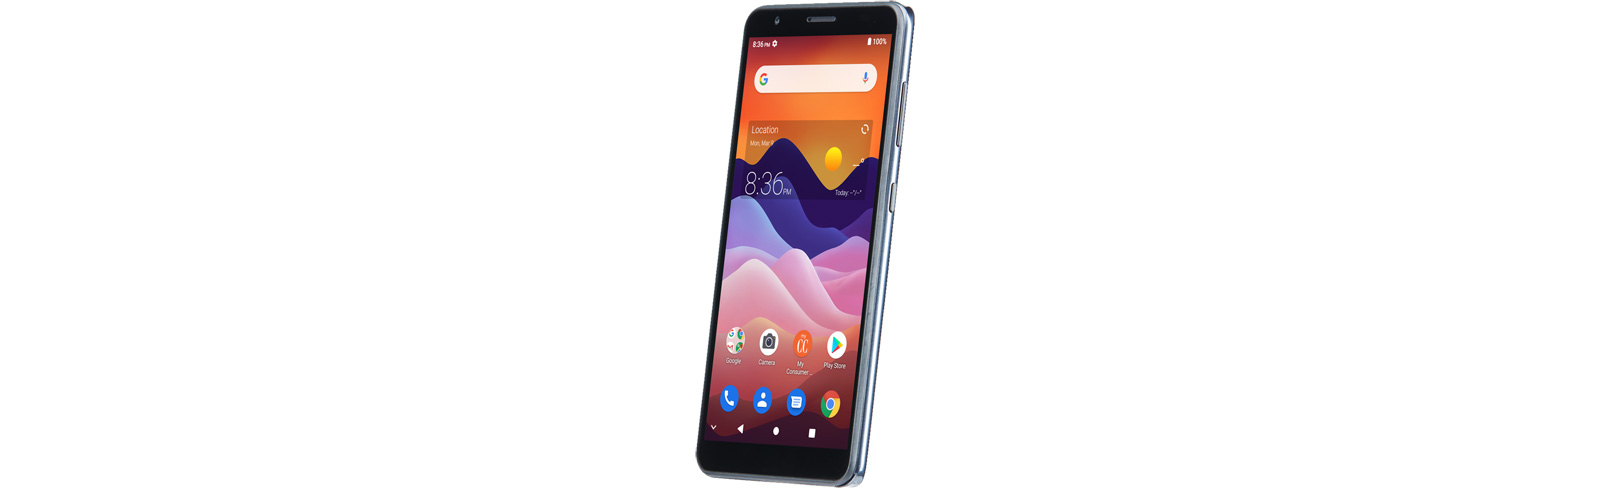 ZTE Avid 579 is a basic LTE smartphone for USD 60